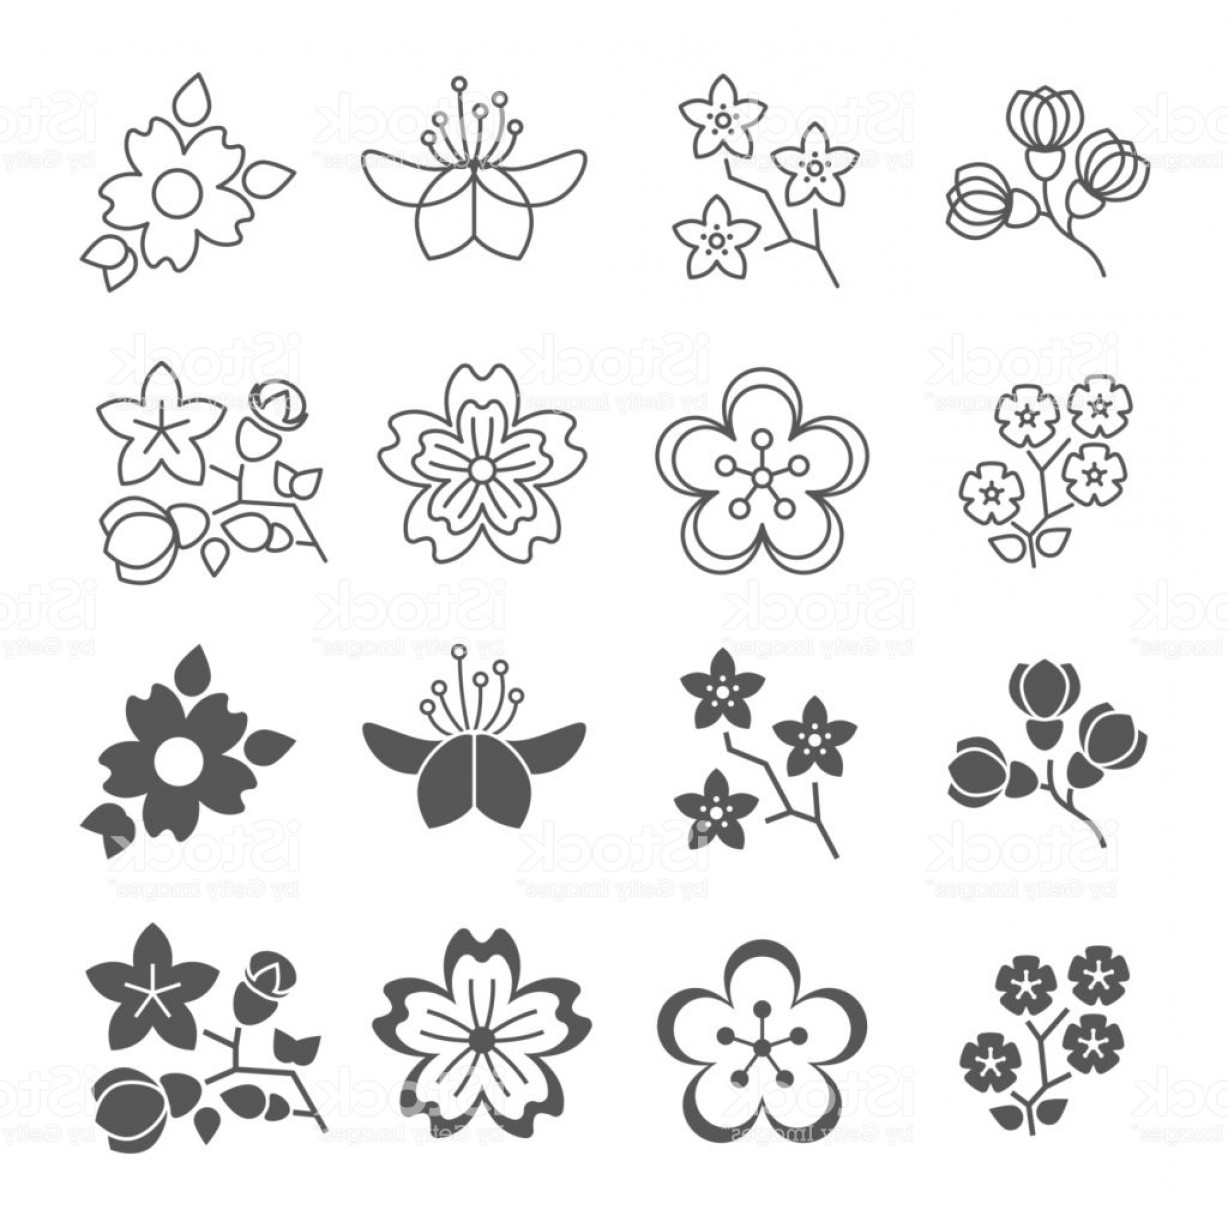 Spring Vector Silhouette: Spring Blossom Flowers Line And Silhouette Icons Set Gm